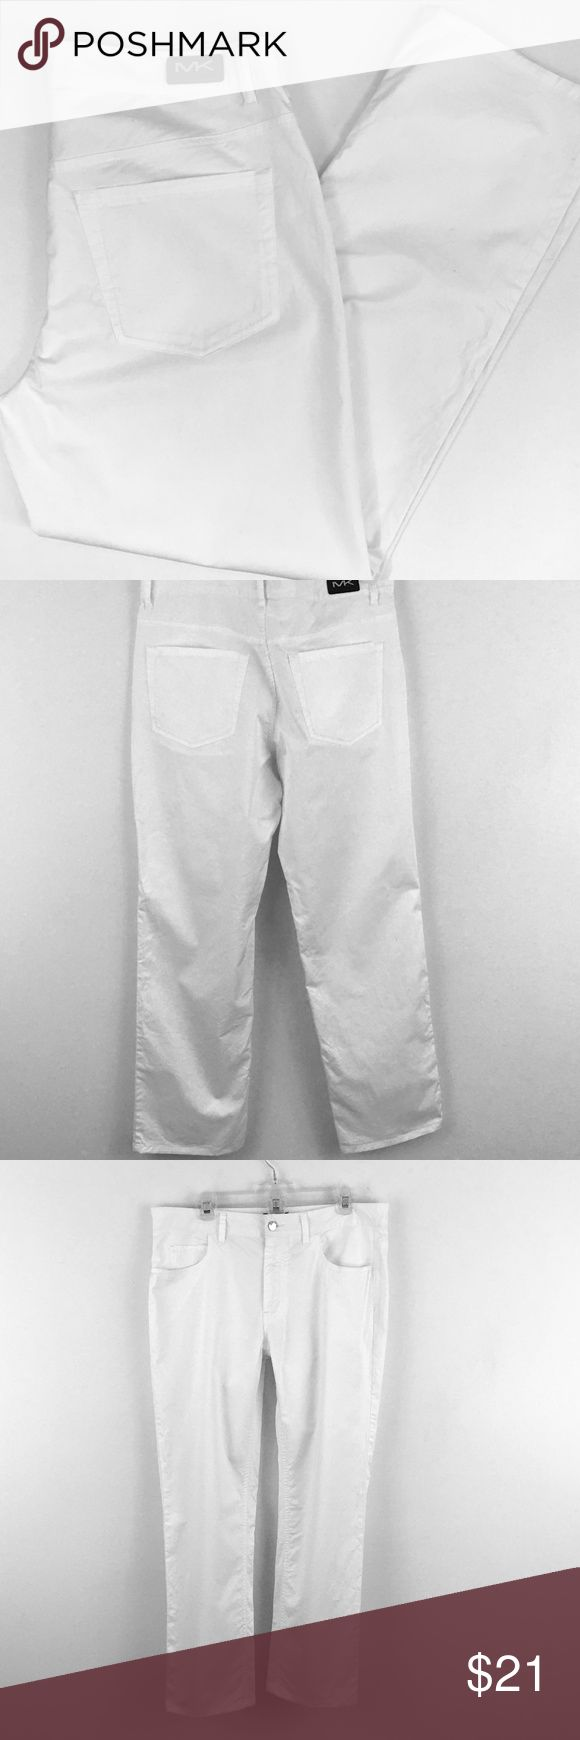 """Michael Kors Mens White Pants Casual White Pants New without tags Michael Kors Men's white casual pants ~ a few marks noted, bottom of both legs have a faint line/crease mark and there's a small (1/8"""") mark on one leg - SEE PHOTOS.    98% Cotton 2% Elastane  These pants are lightweight and thin with a nice amount of stretch  Approximate measurements taken laying flat  Size  34/30 Waist 18"""" Front Rise 10""""  smoke free home Michael Kors Pants"""